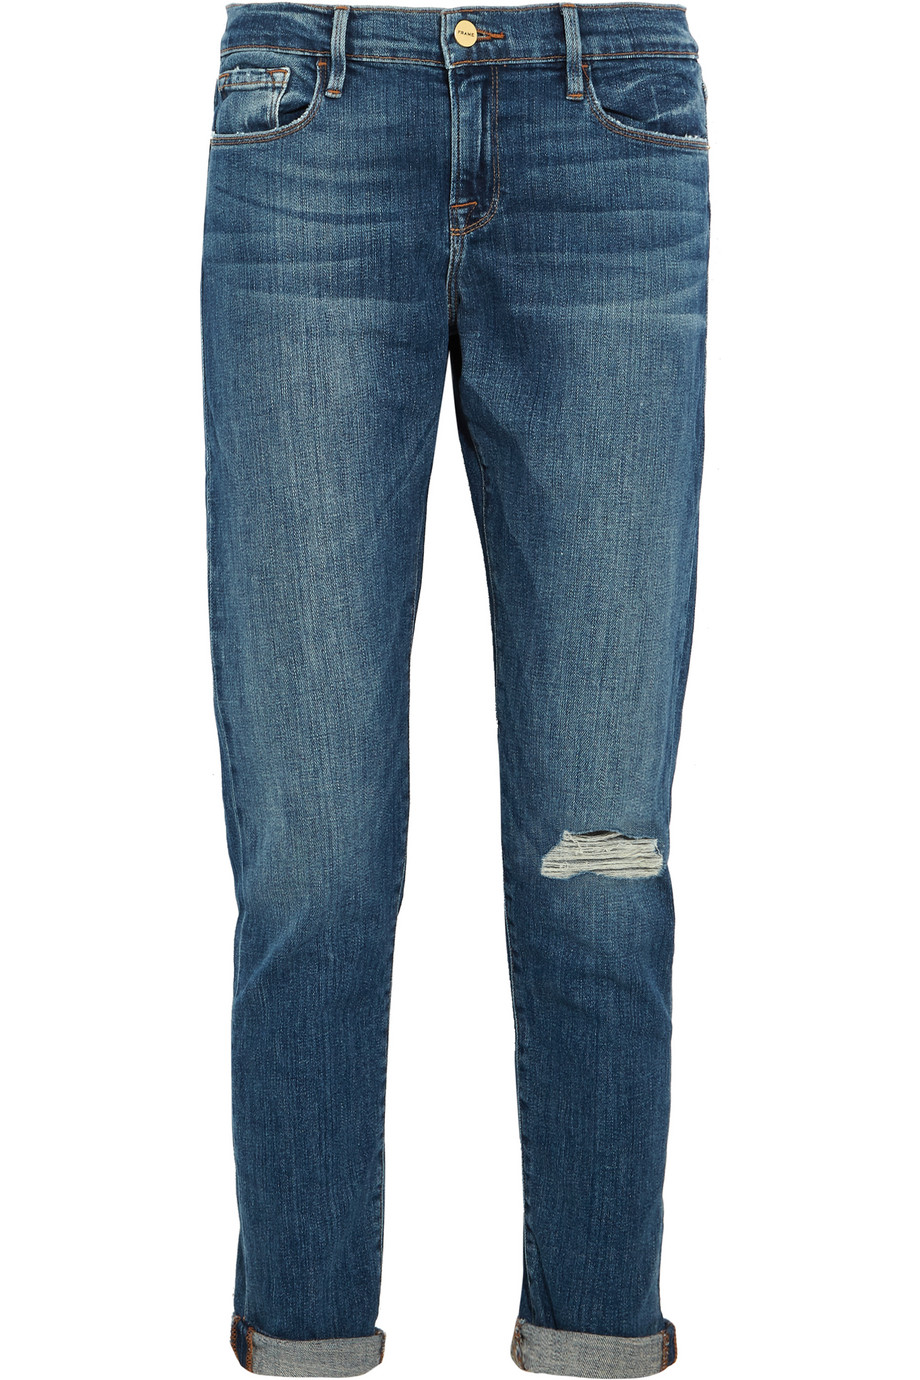 Le Garcon Distressed Mid-Rise Slim Boyfriend Jeans, Mid Denim, Women's, Size: 30